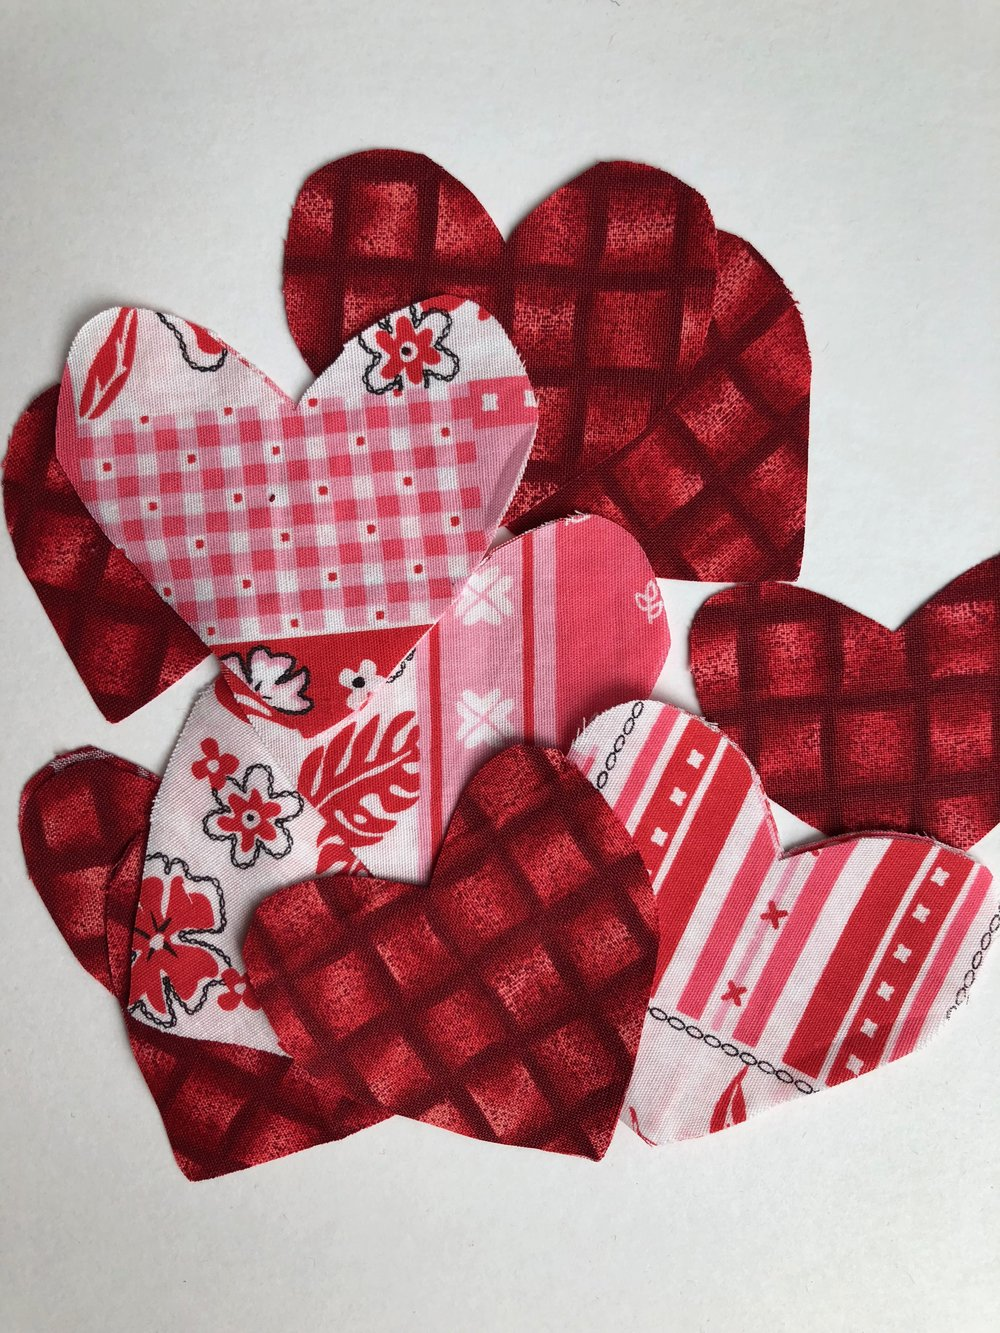 Fabric heart shape cutouts